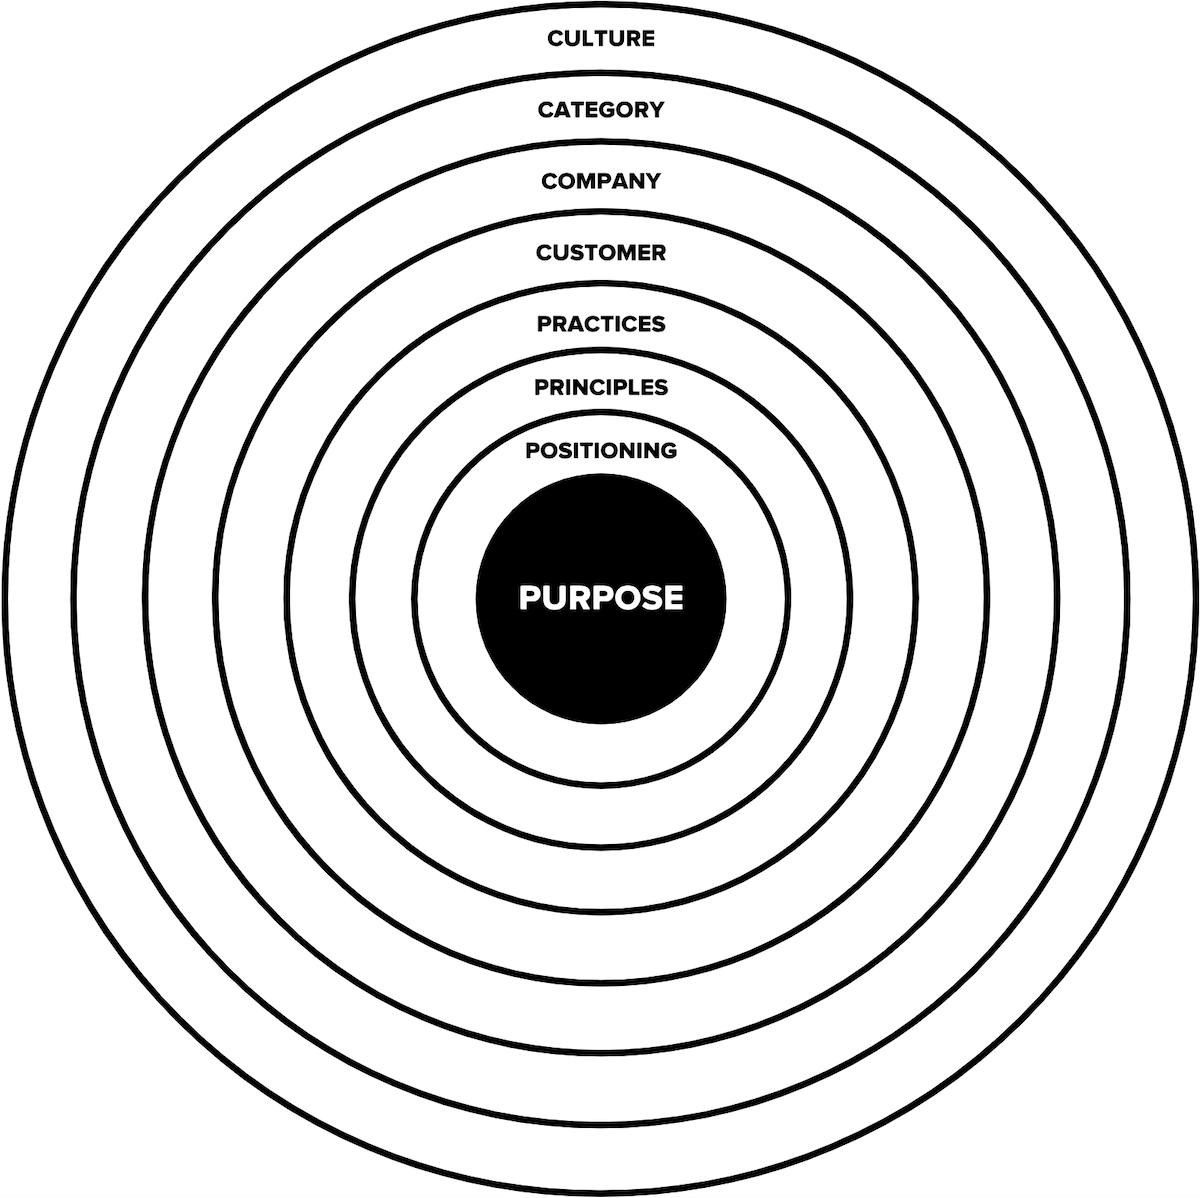 Against-Purpose-Positioning-Diagram.png